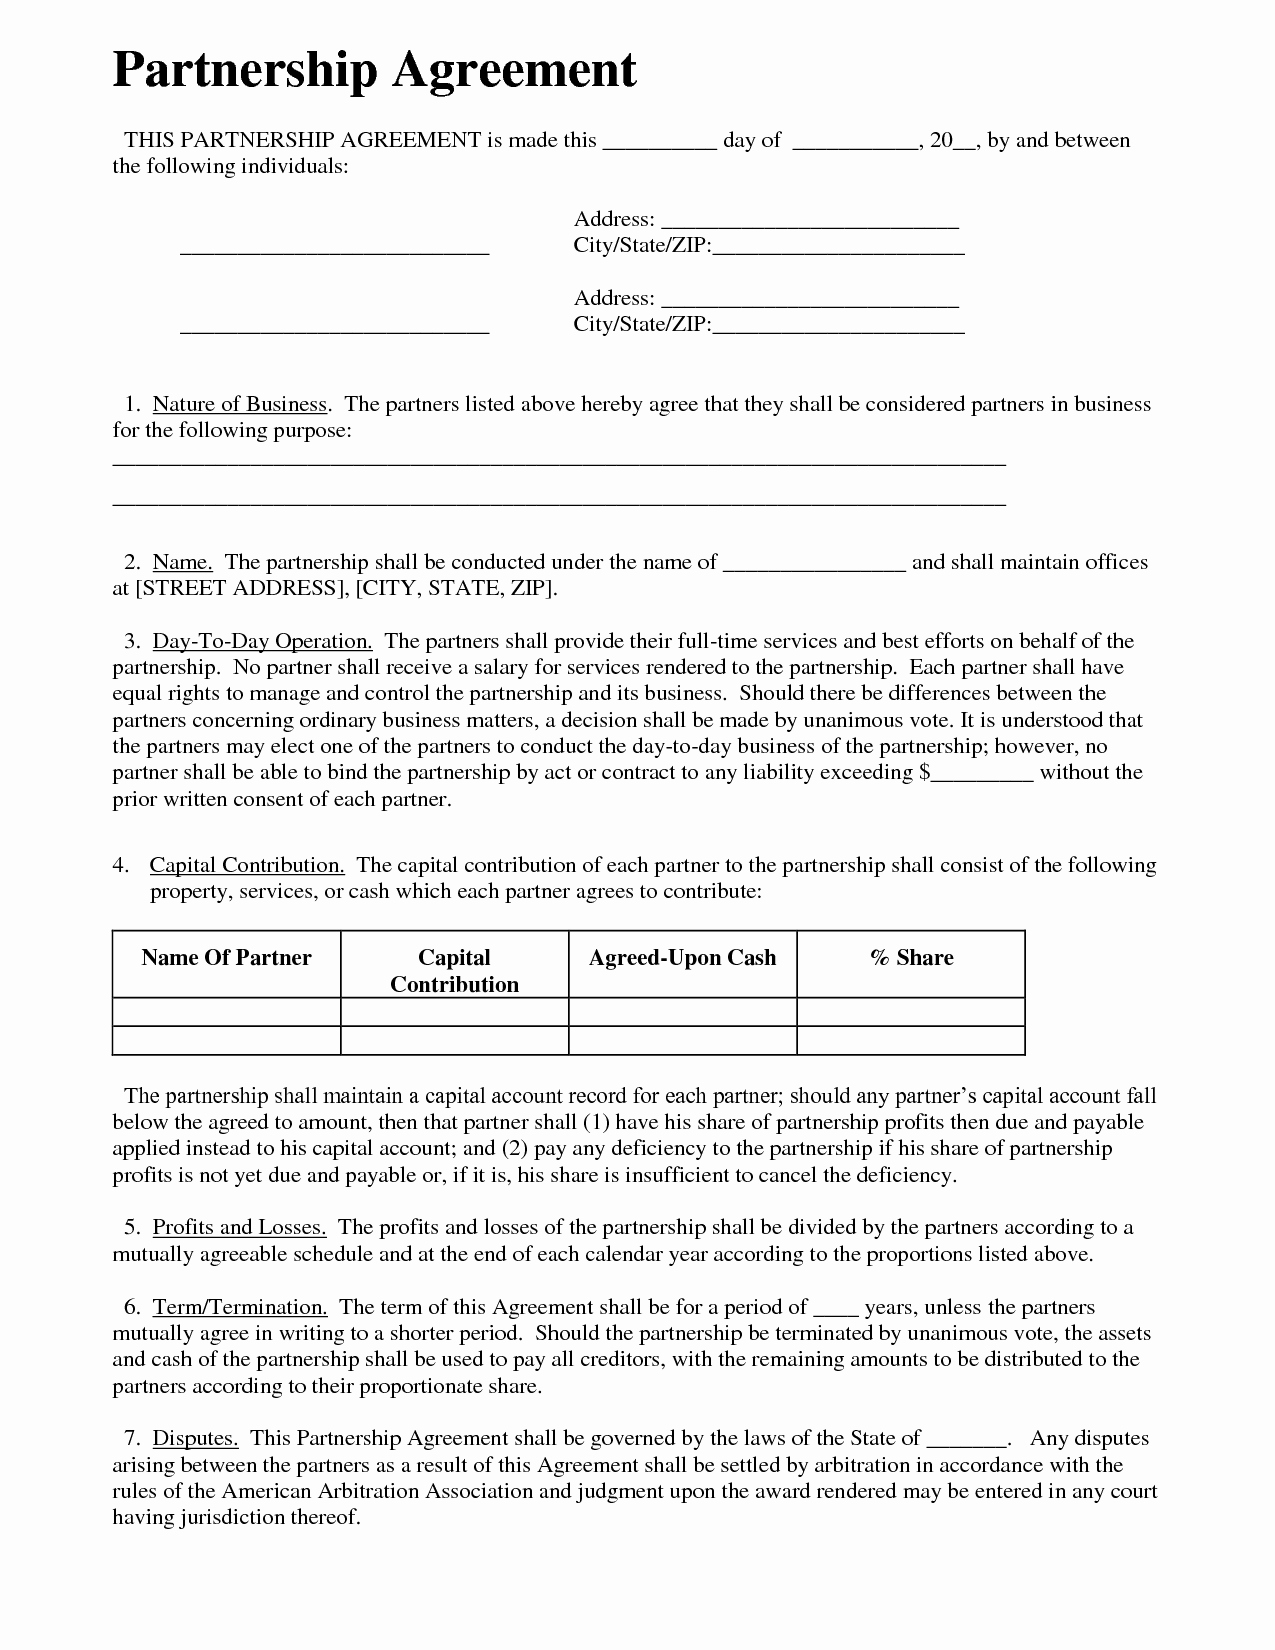 Real Estate Partnership Agreement Template Elegant Partnership Agreement Business Templates